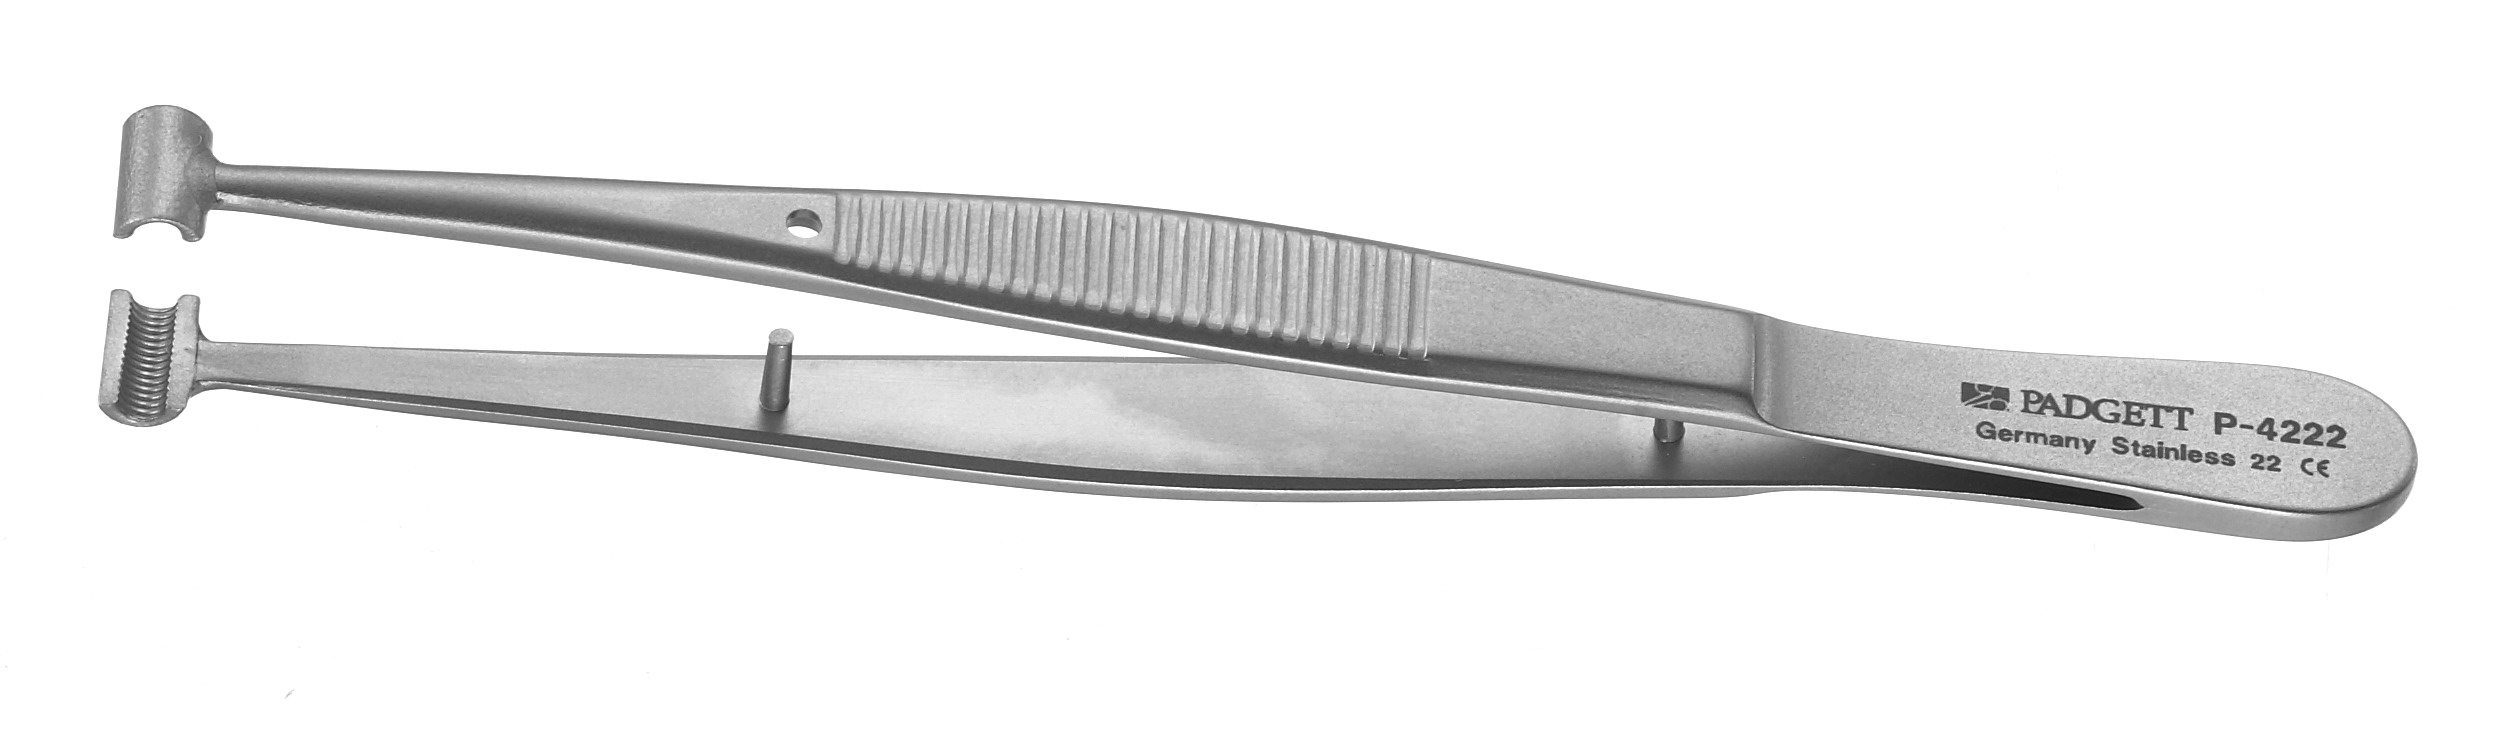 larsen-tendon-forceps-4-102mm-length-2mm-wide-pm-4222-miltex.jpg